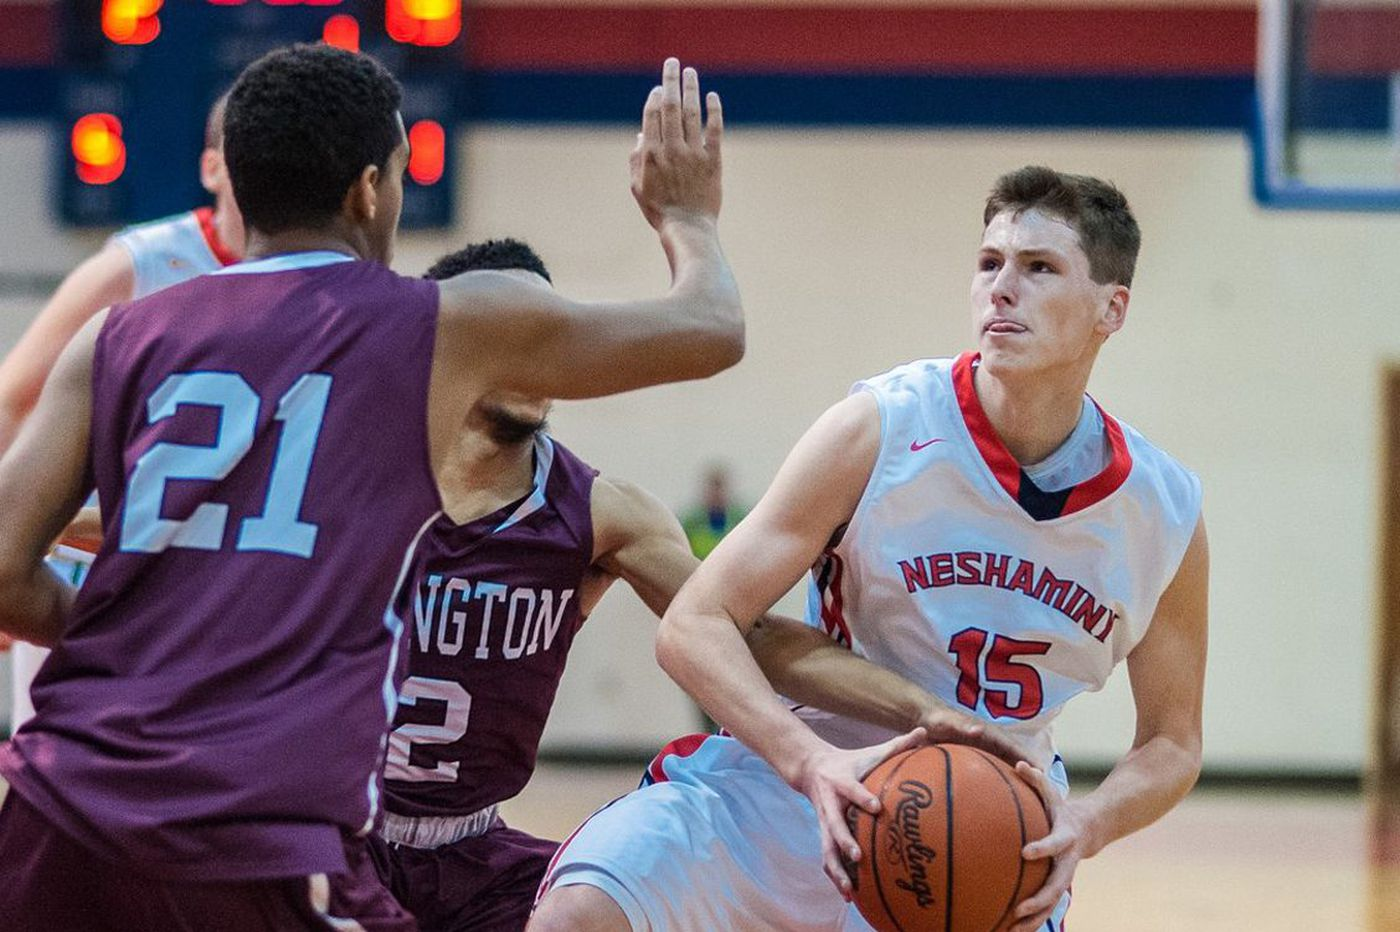 Wednesday's Pa. roundup: Chris Arcidiacono scores 51 in Neshaminy's thrilling win over Lower Merion